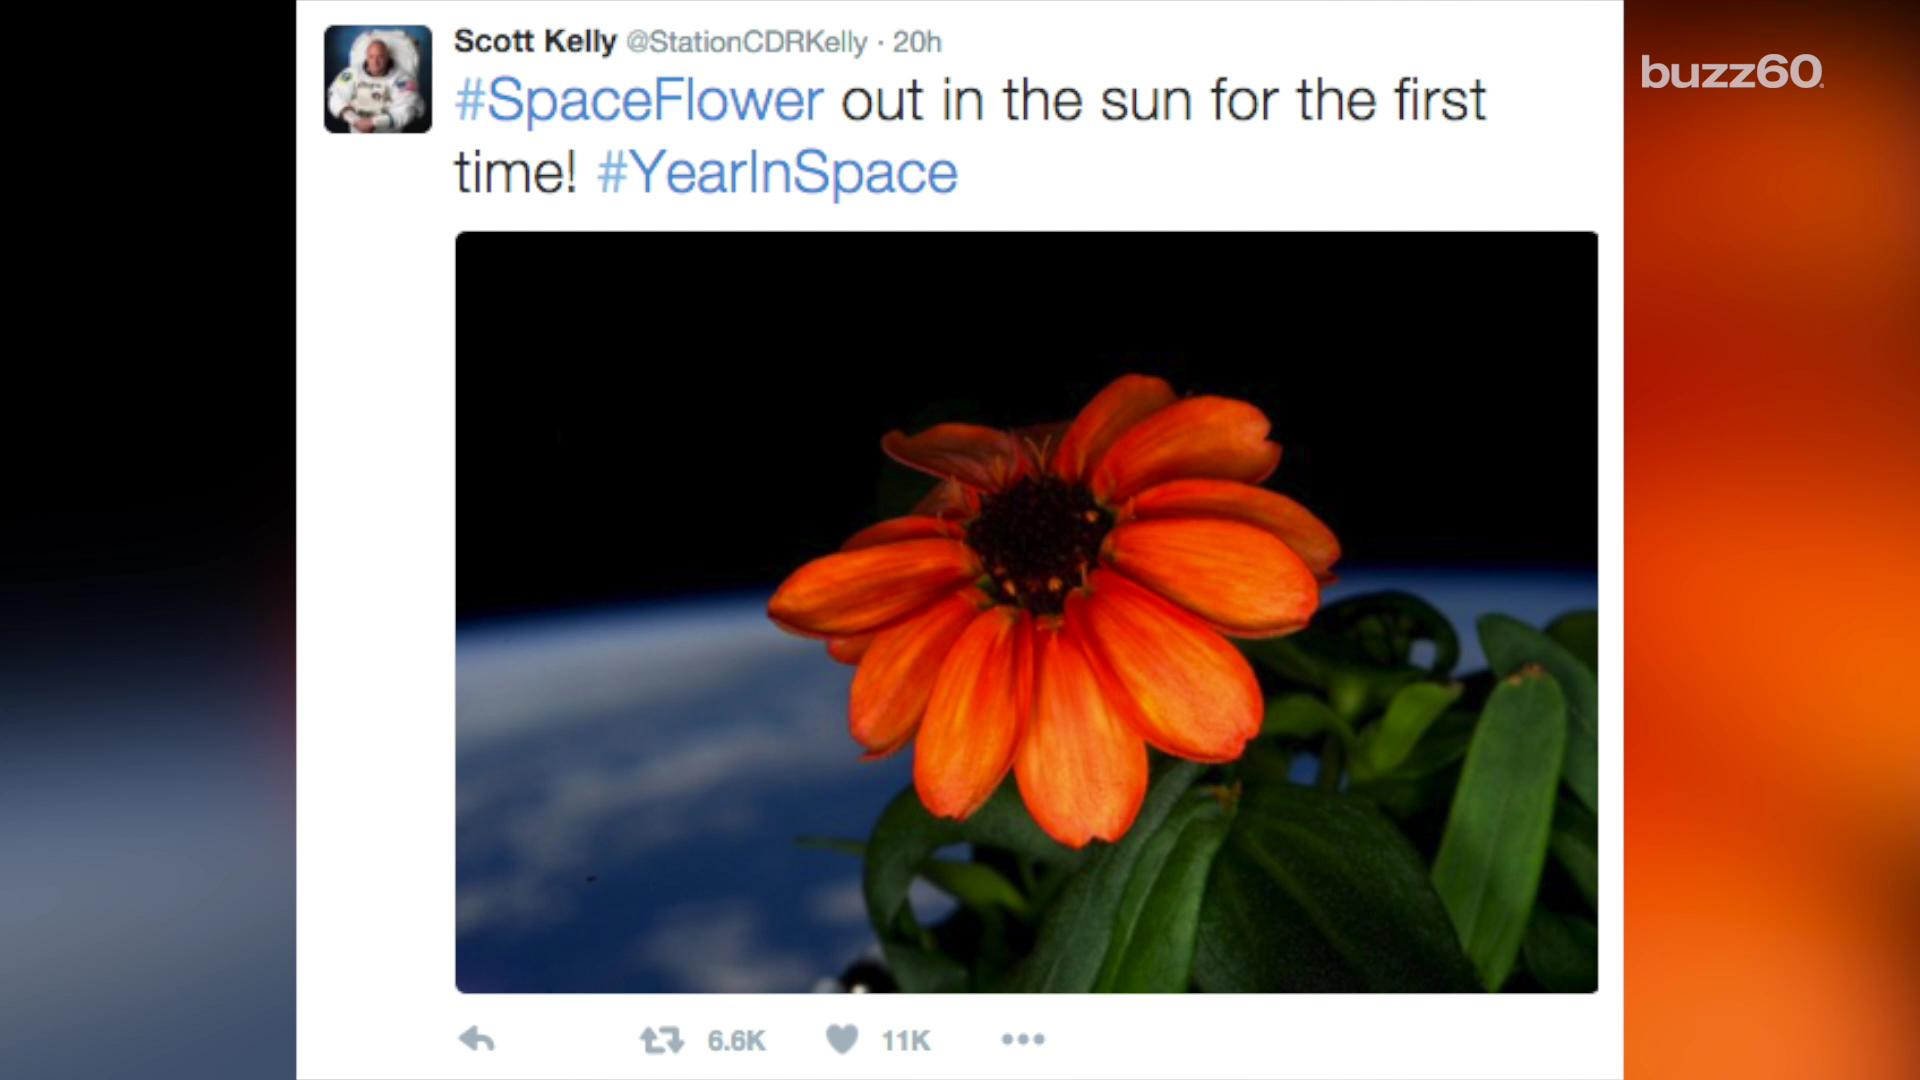 Space just got sweeter as first flower bloom aboard the ISS